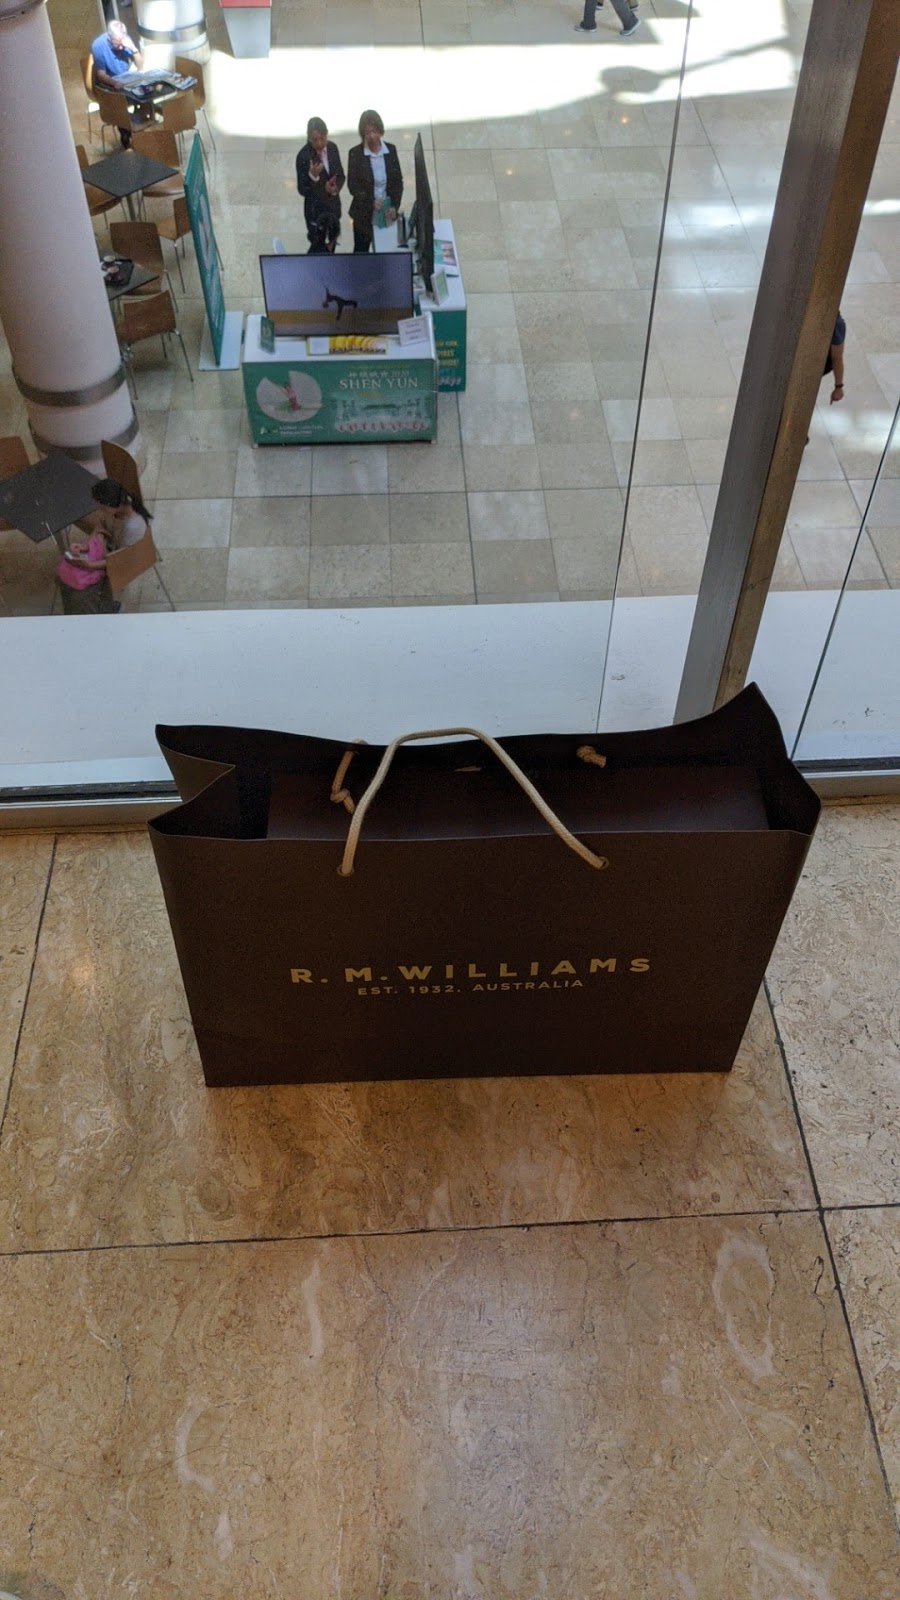 R.M.Williams Chatswood | clothing store | G, 052/345 Victoria Ave, Chatswood NSW 2067, Australia | 0294114388 OR +61 2 9411 4388